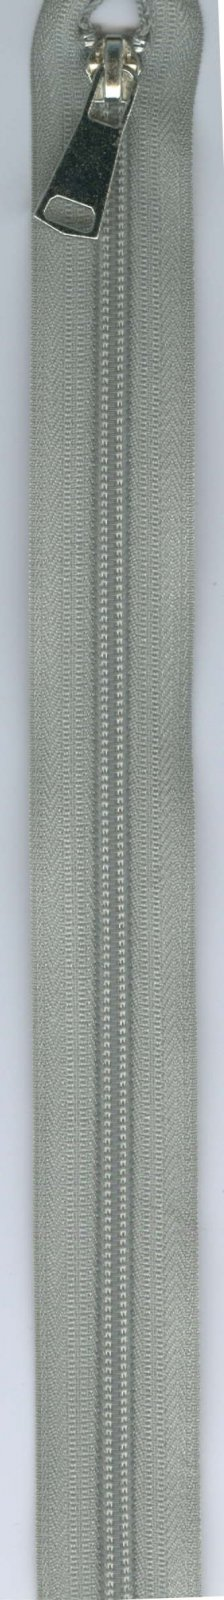 32 Separating Zipper #5 - Gray with Silver Pull